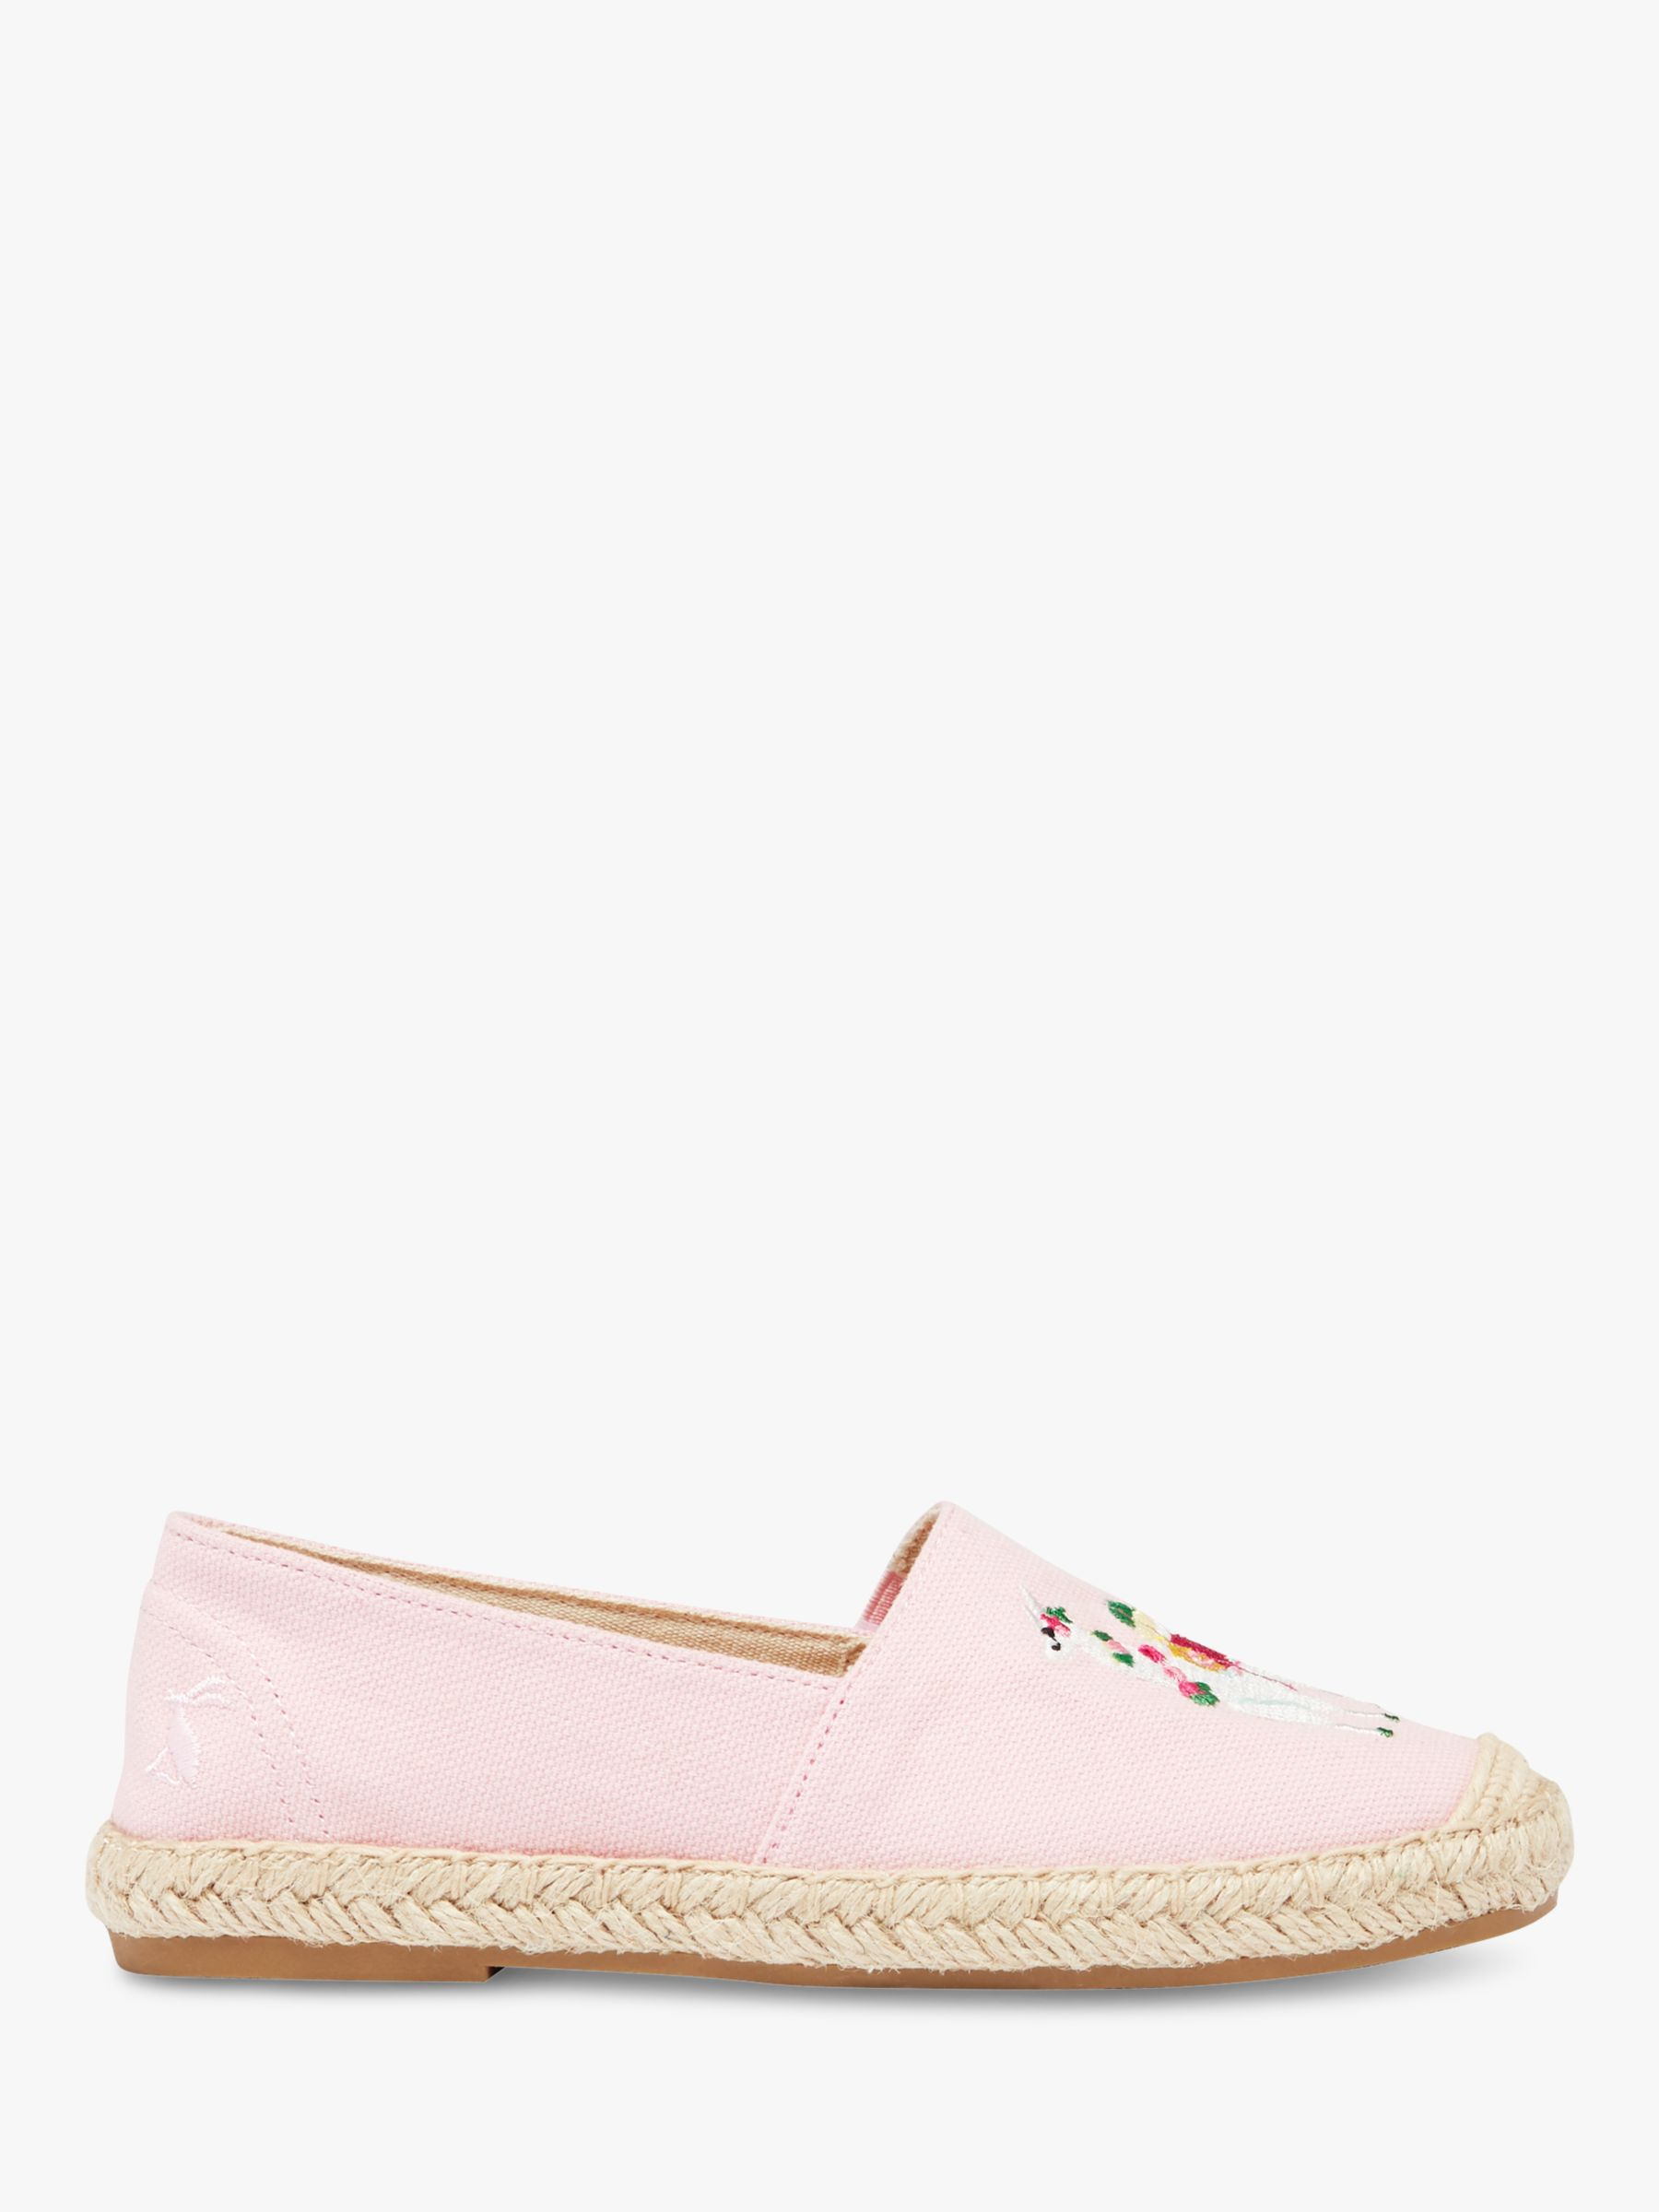 Joules Little Joule Children's Shelbury Embroidered Llama Espadrilles, Pink